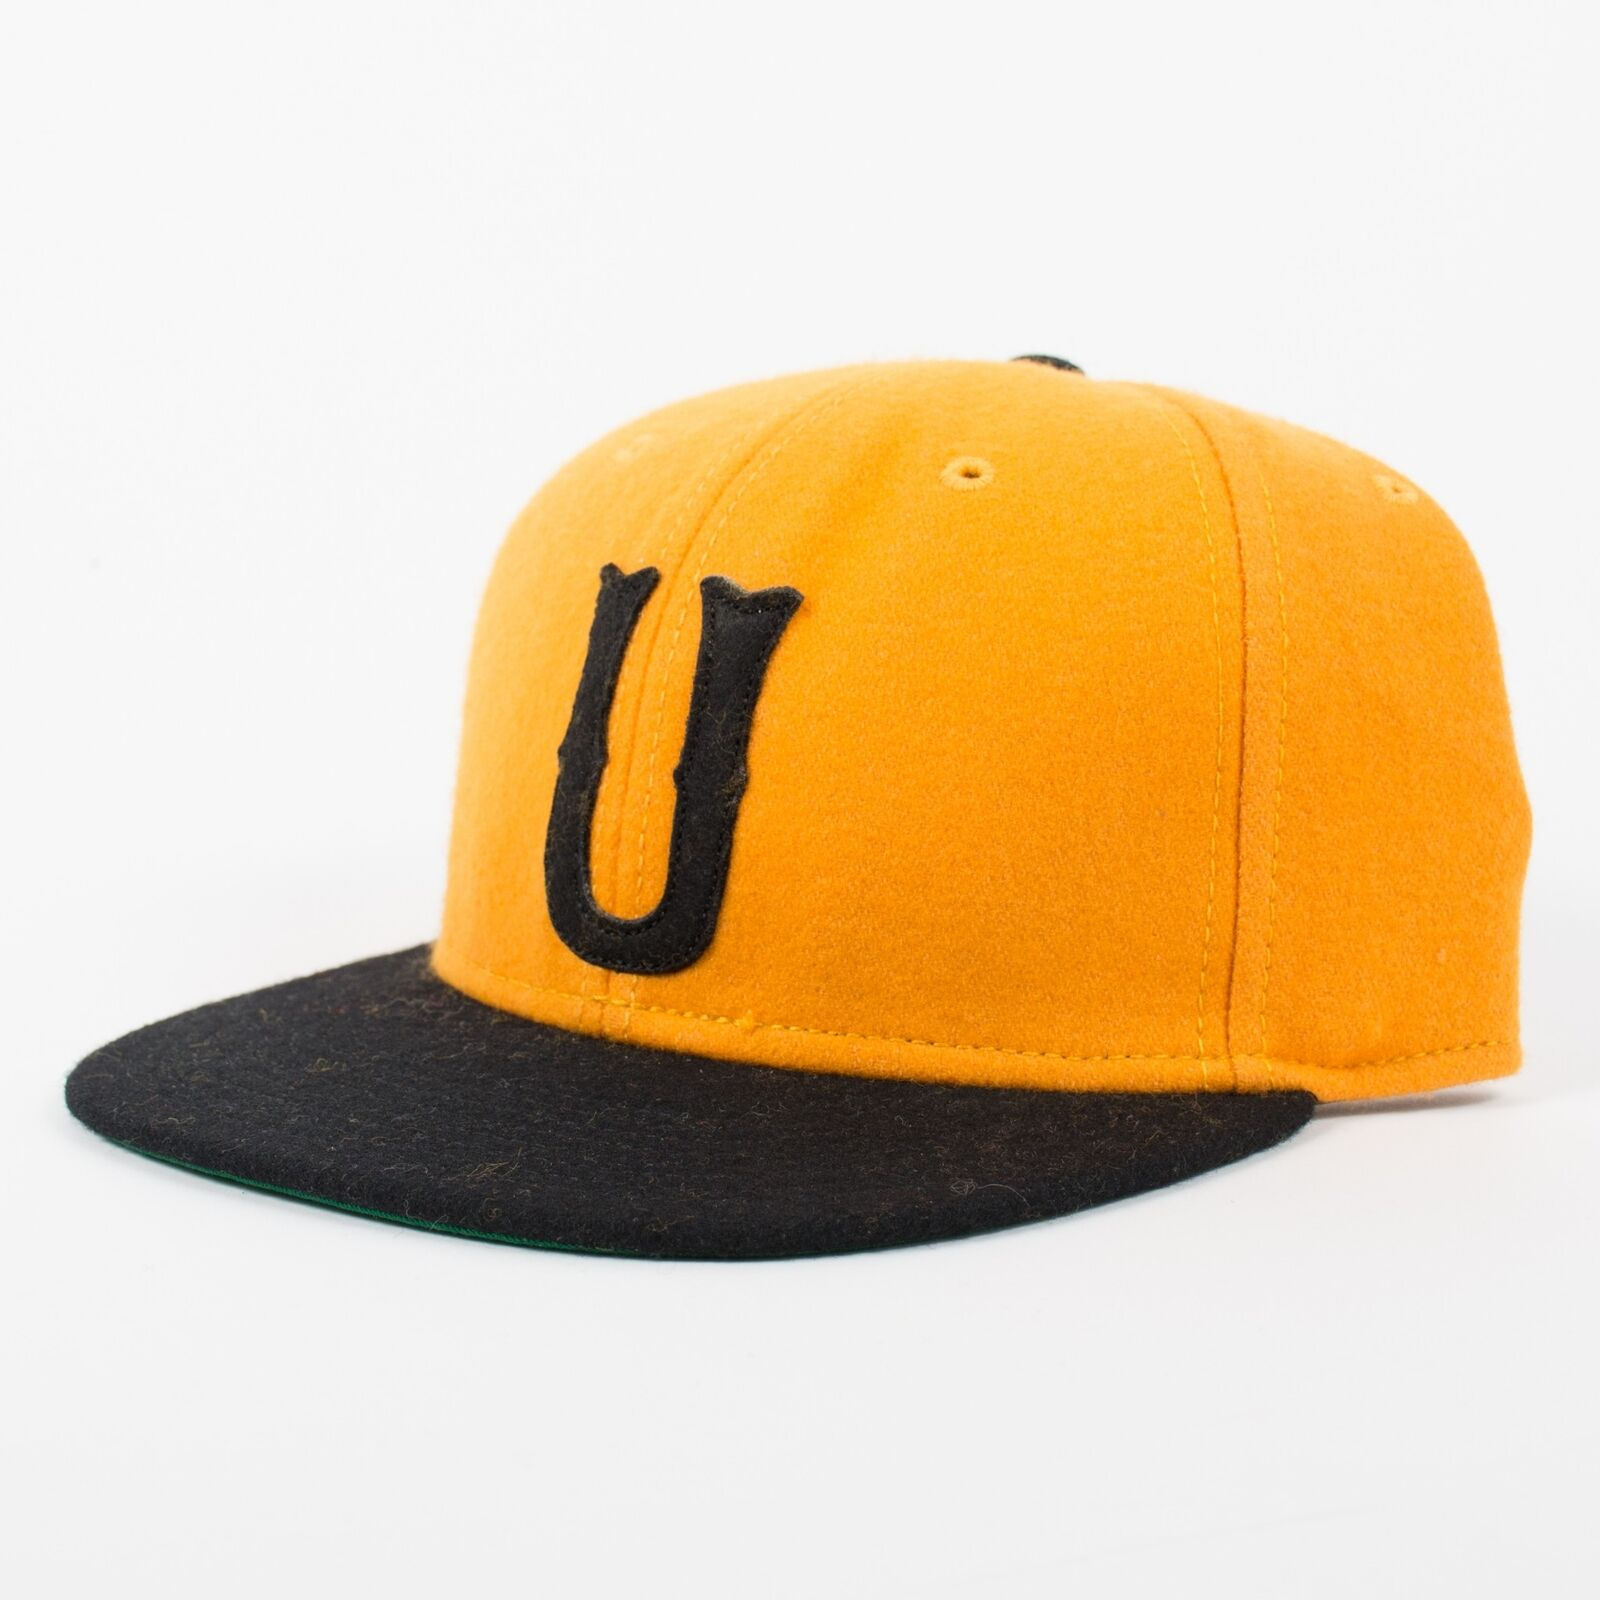 UNDEFEATED Gold Classic U Snapback Hat Gold UNDEFEATED Black Yellow H13 6db700